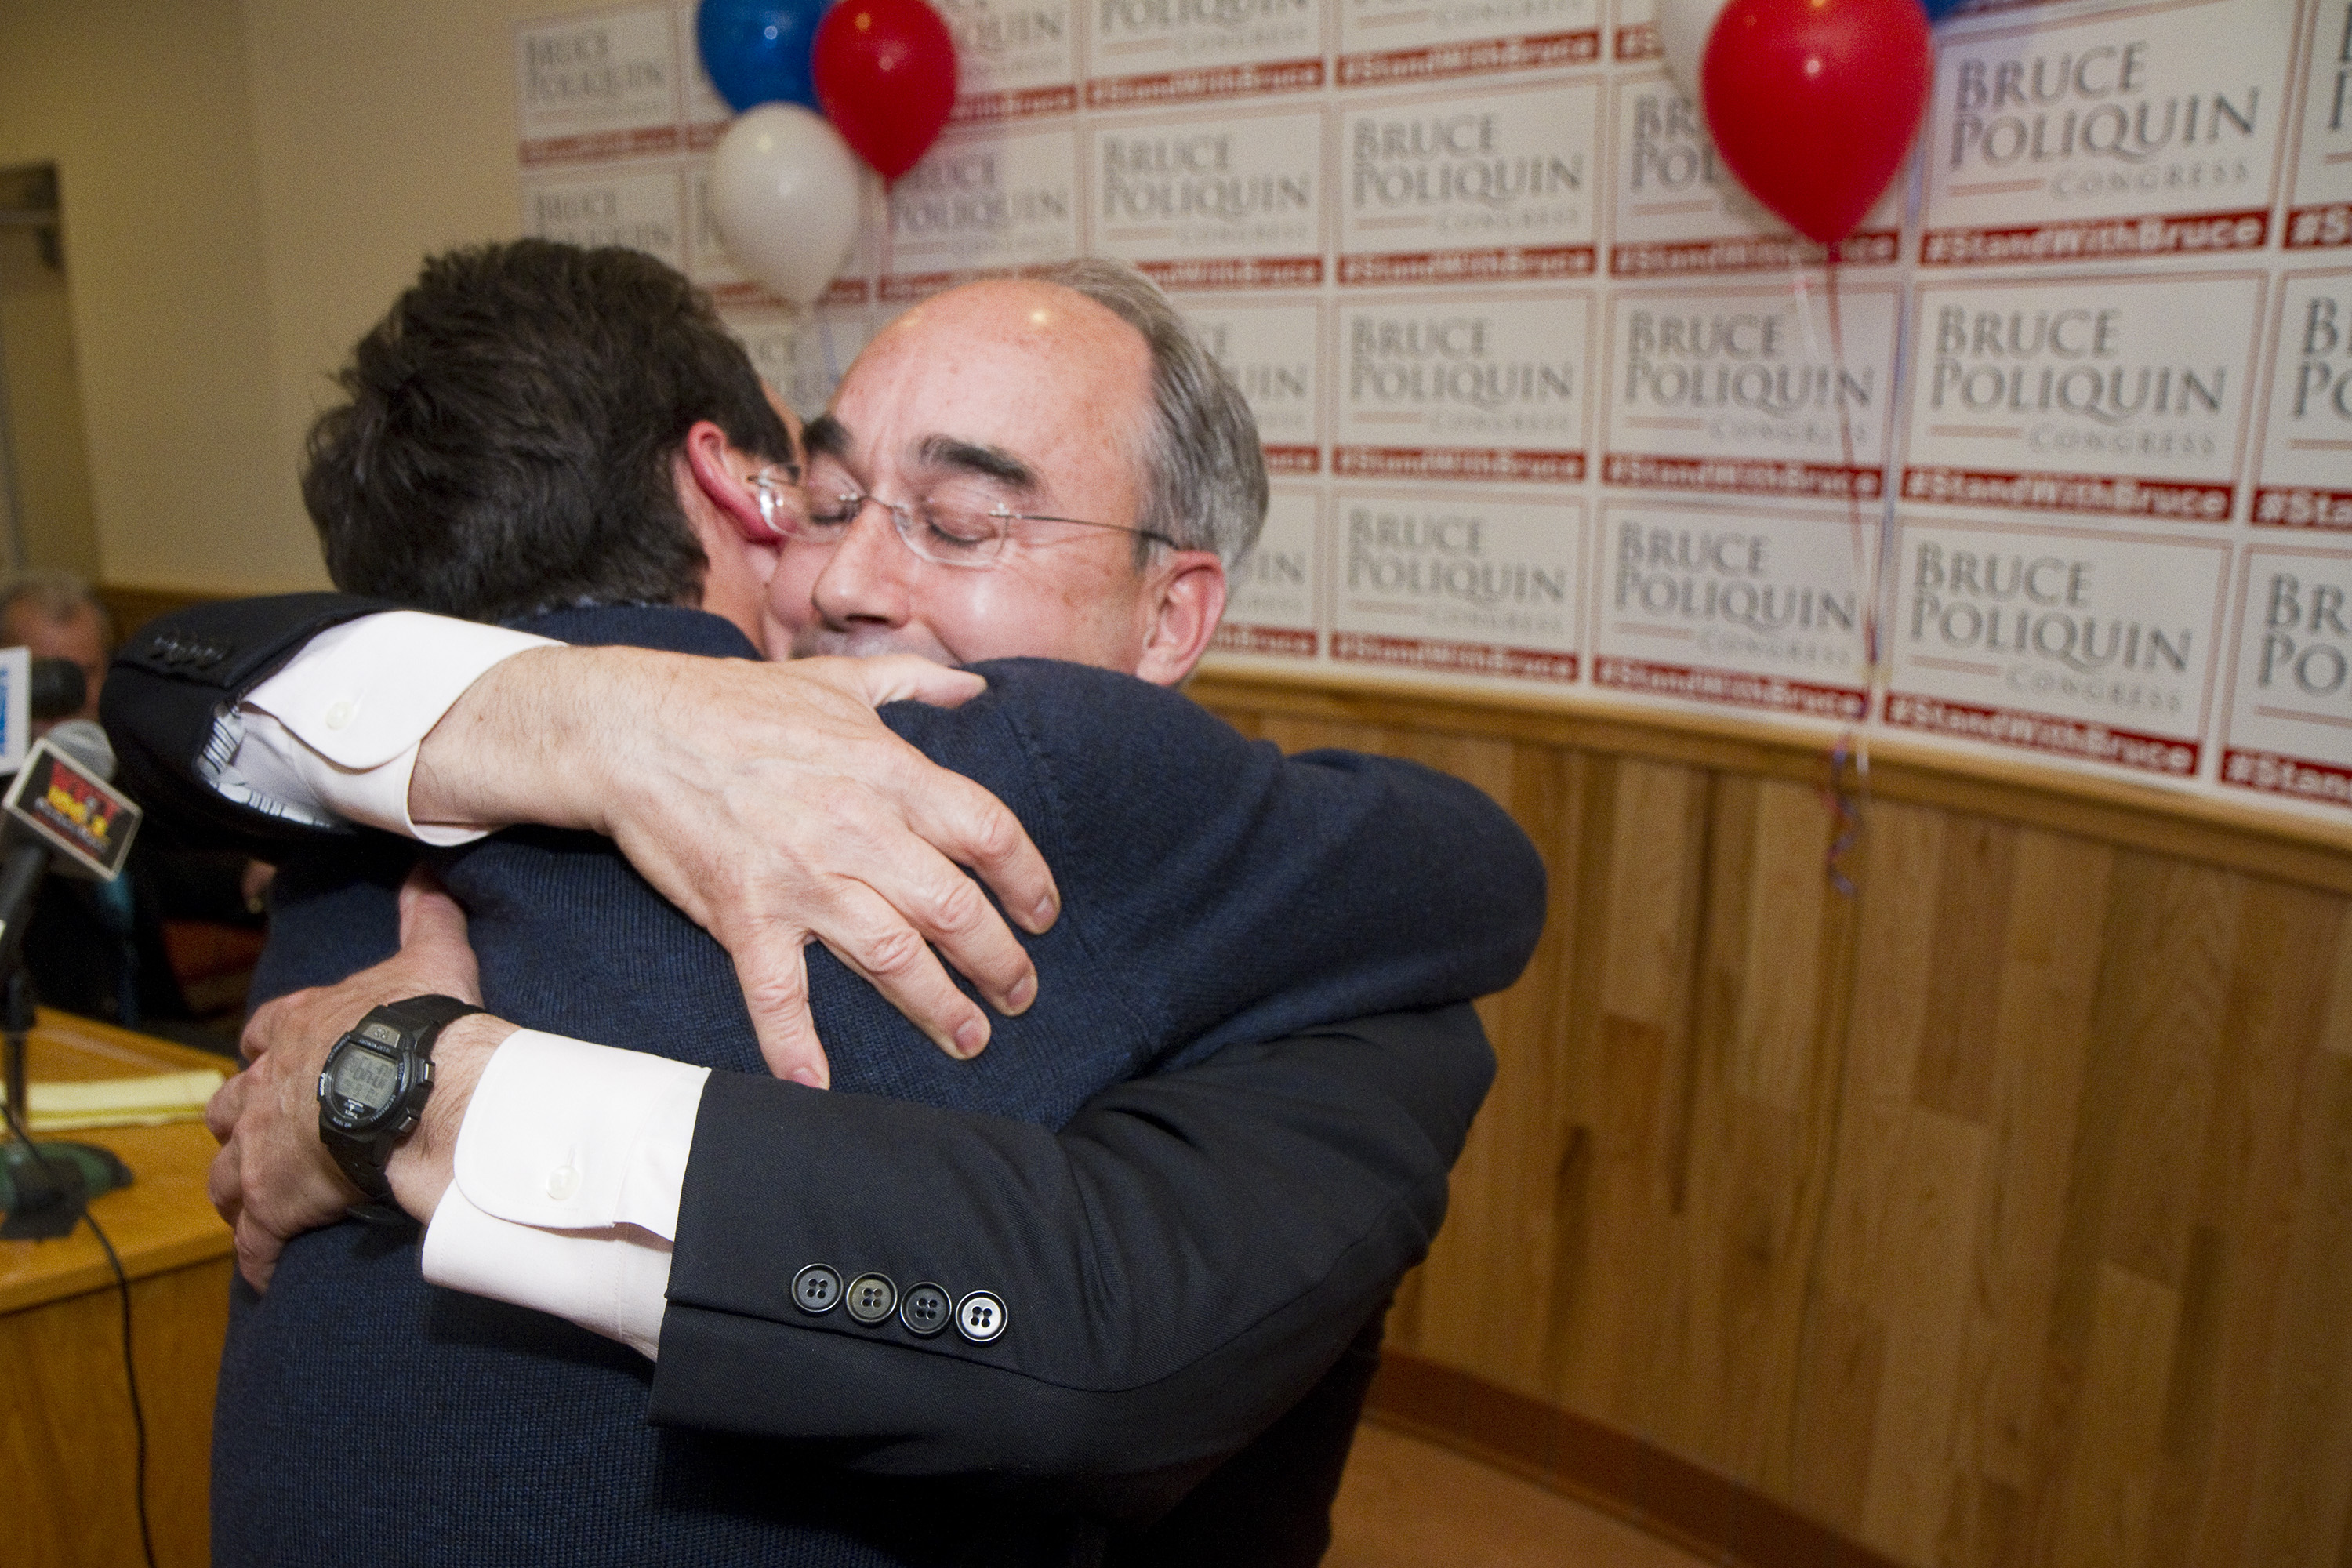 Bruce Poliquin hugs his son Sam after declaring victory in the primary at Dysarts Broadway in Bangor Tuesday.   Carl D. Walsh / Staff Photographer